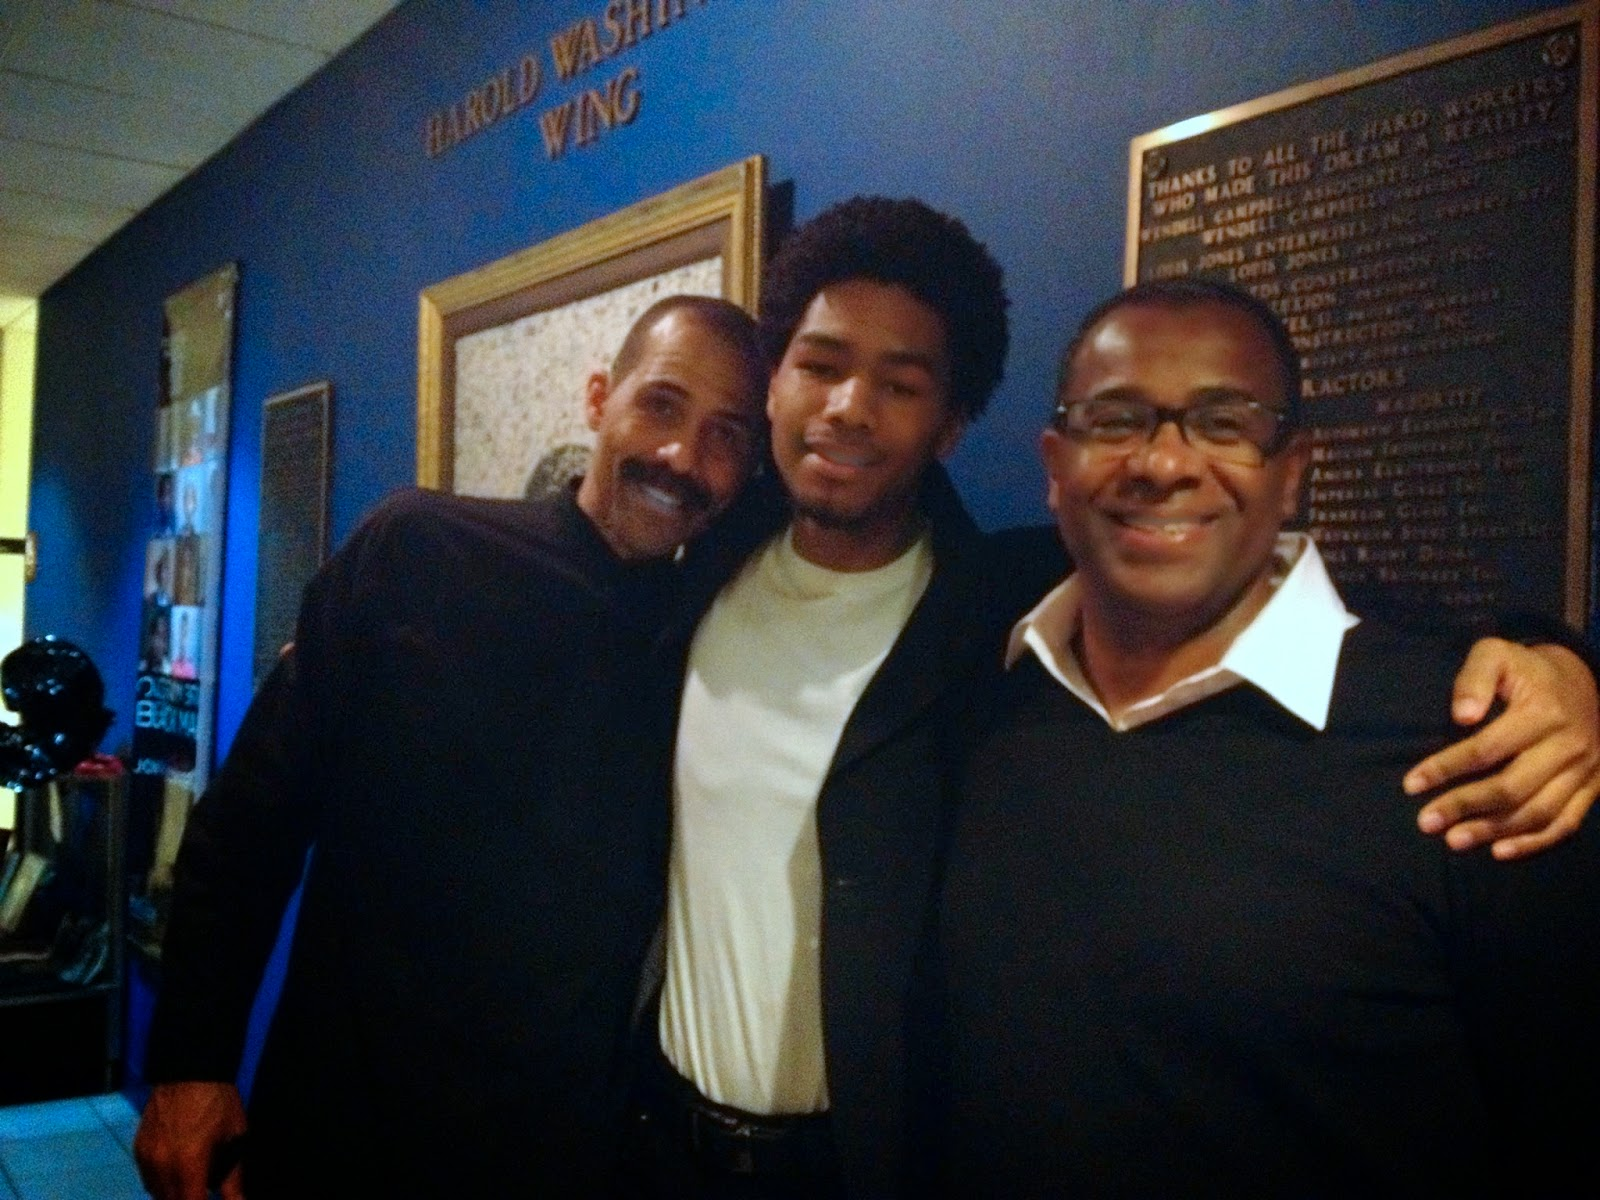 Be Known Documentary Star Kahil EL Zabar,  his son Nasser Israel, Director Dwayne Johnson-Cochran